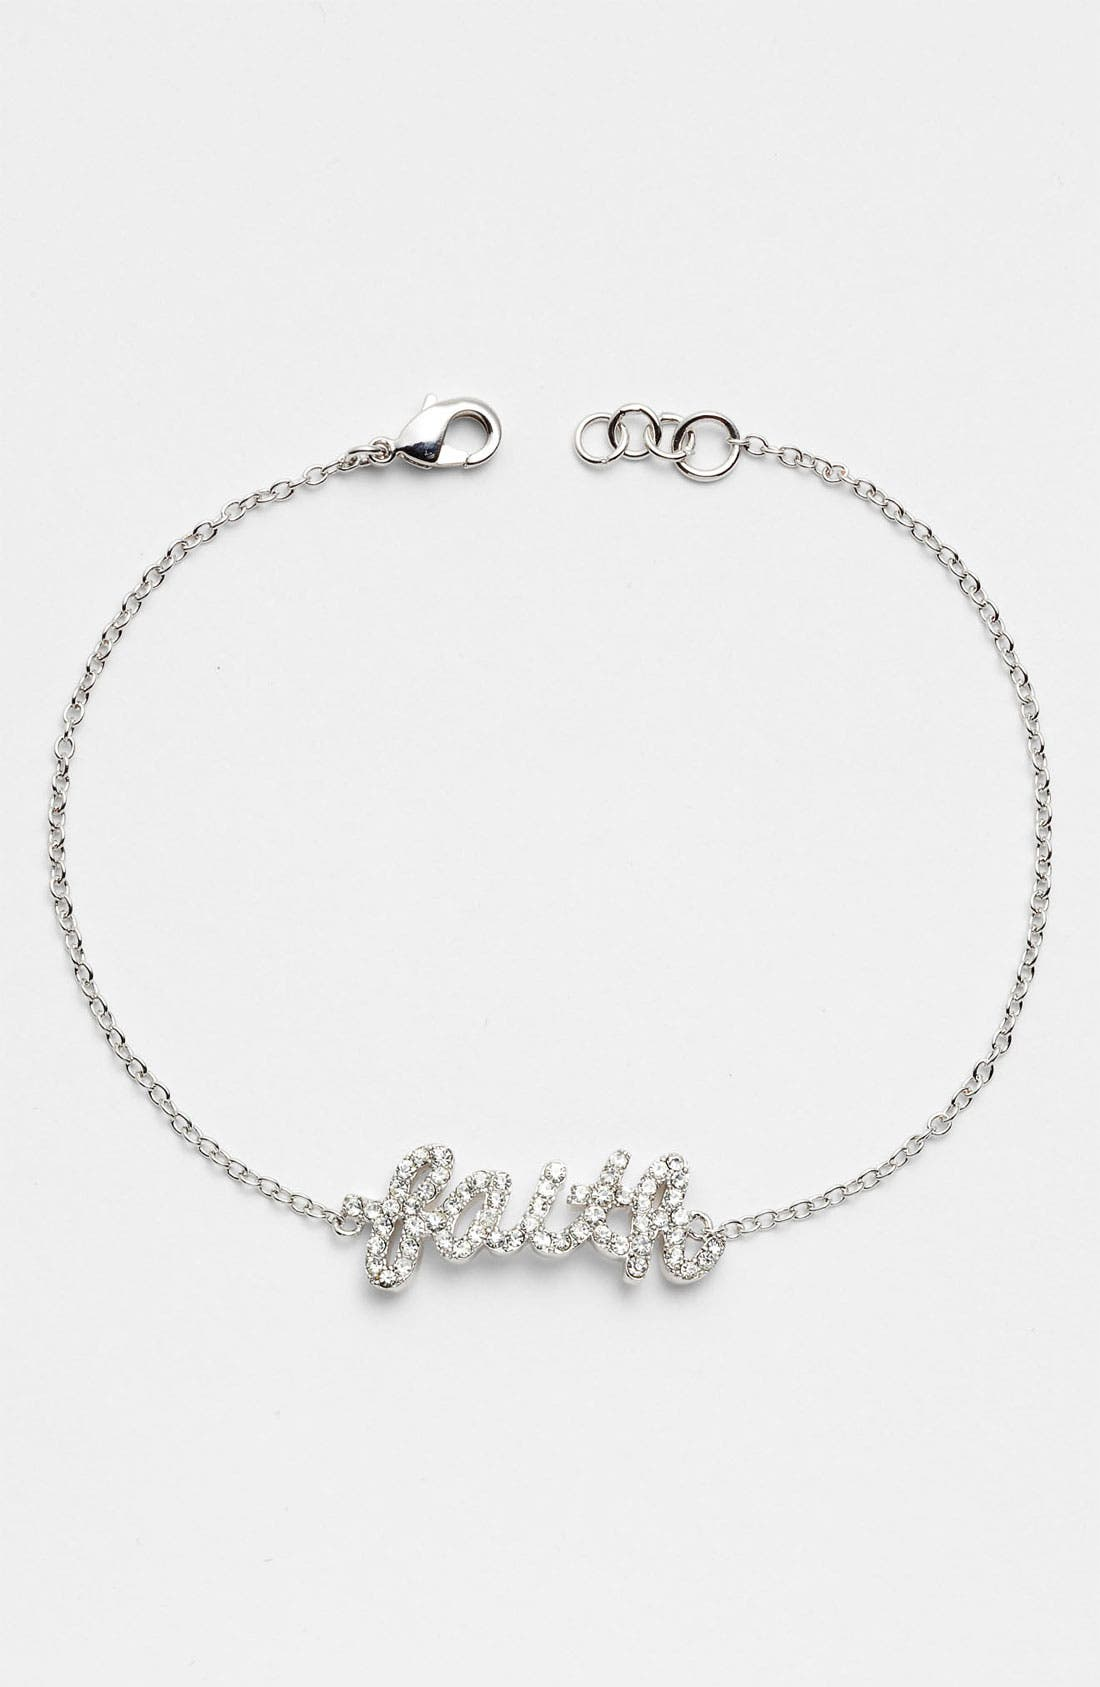 Main Image - Ariella Collection 'Messages - Faith' Script Station Bracelet